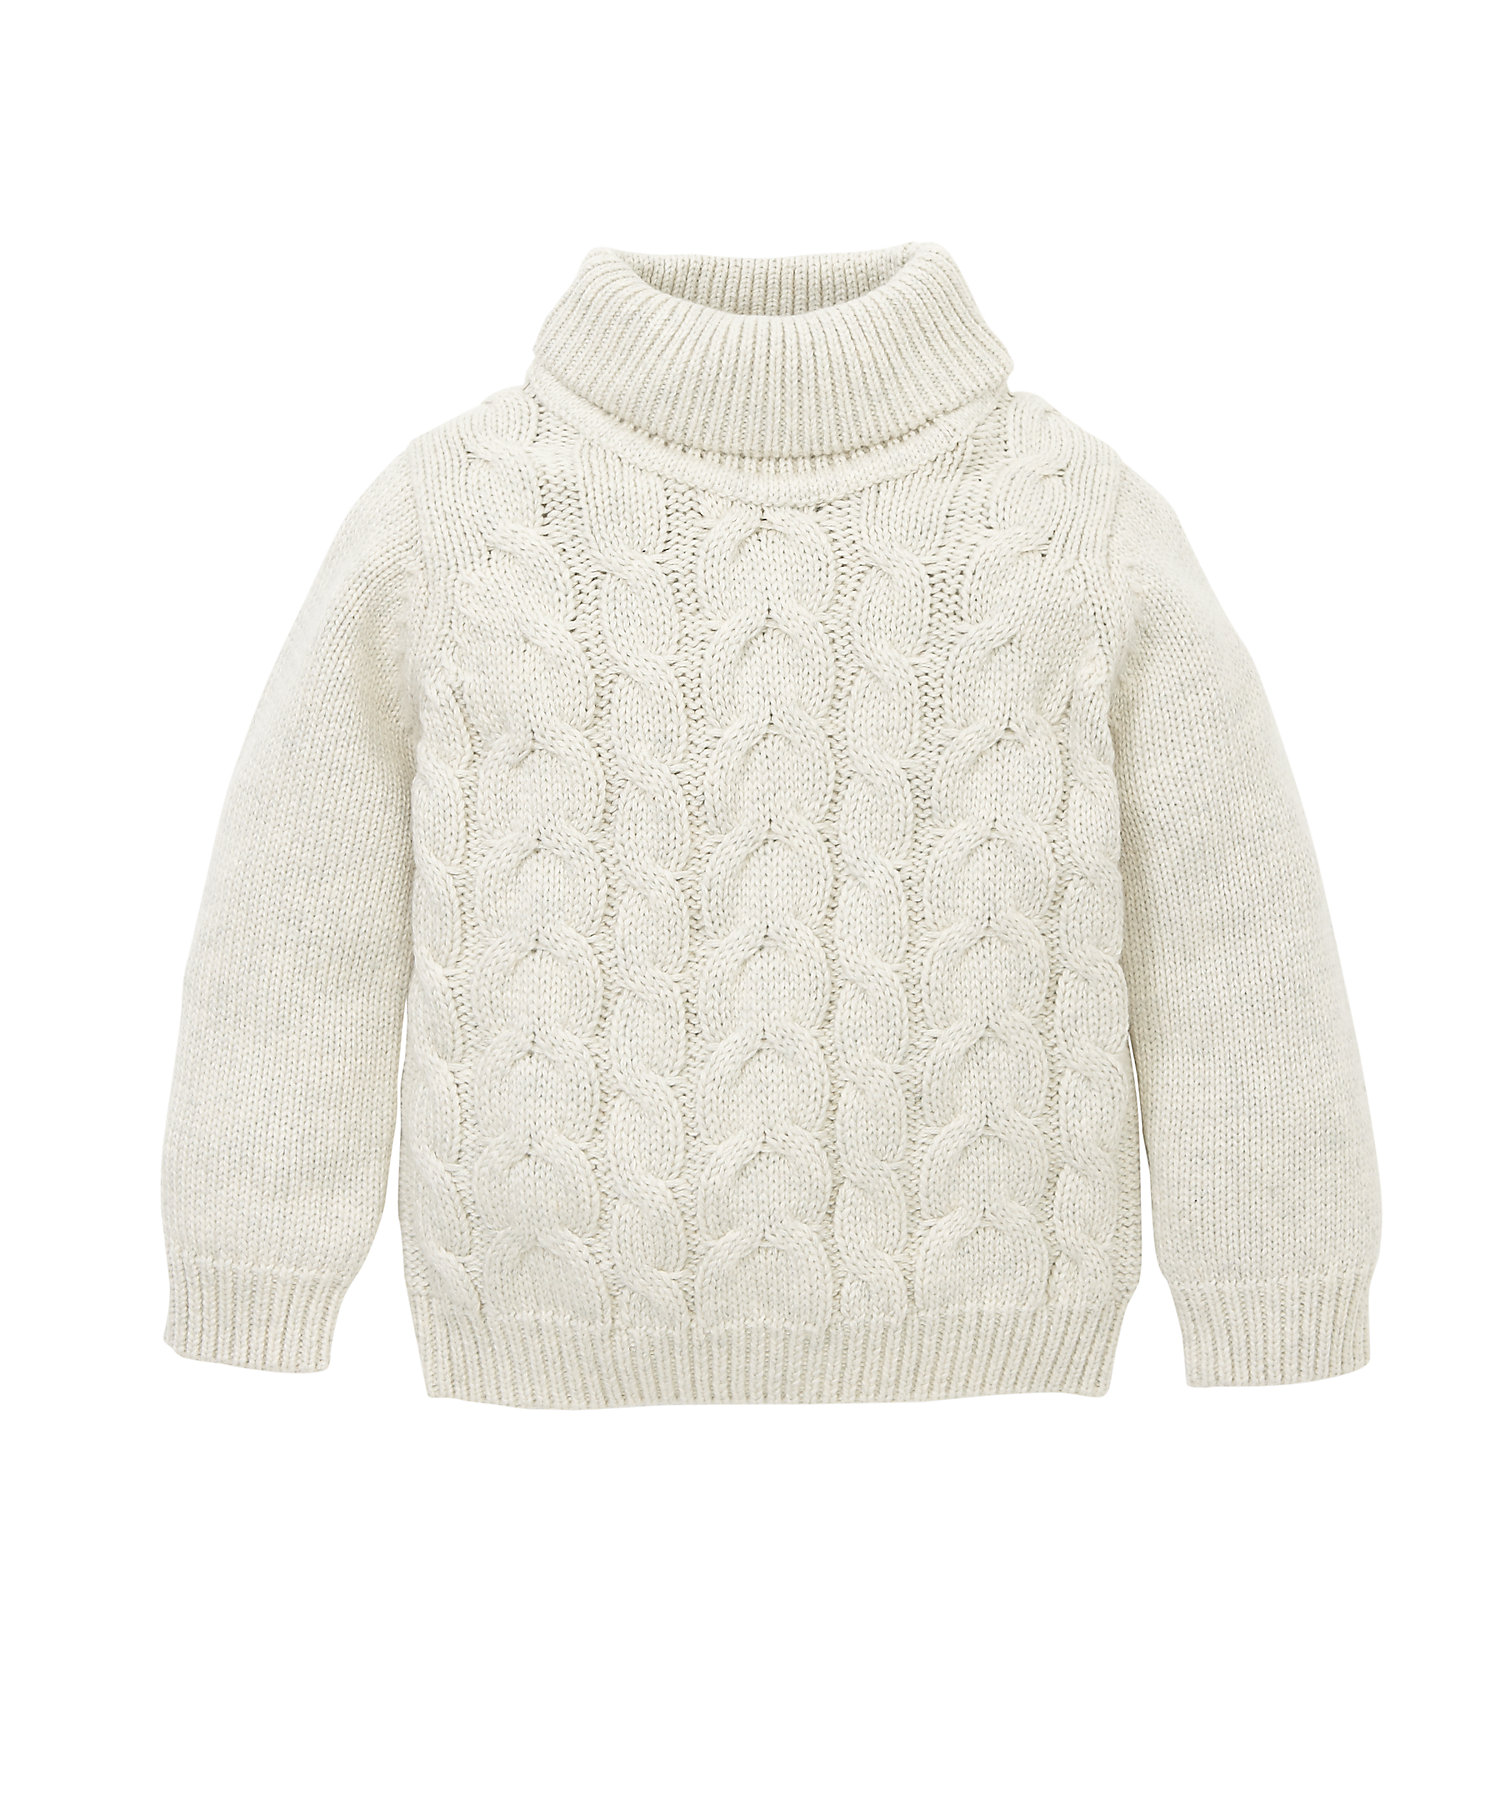 Mothercare | Girls Full Sleeves Roll Neck Sweater Chunky Knit - Cream